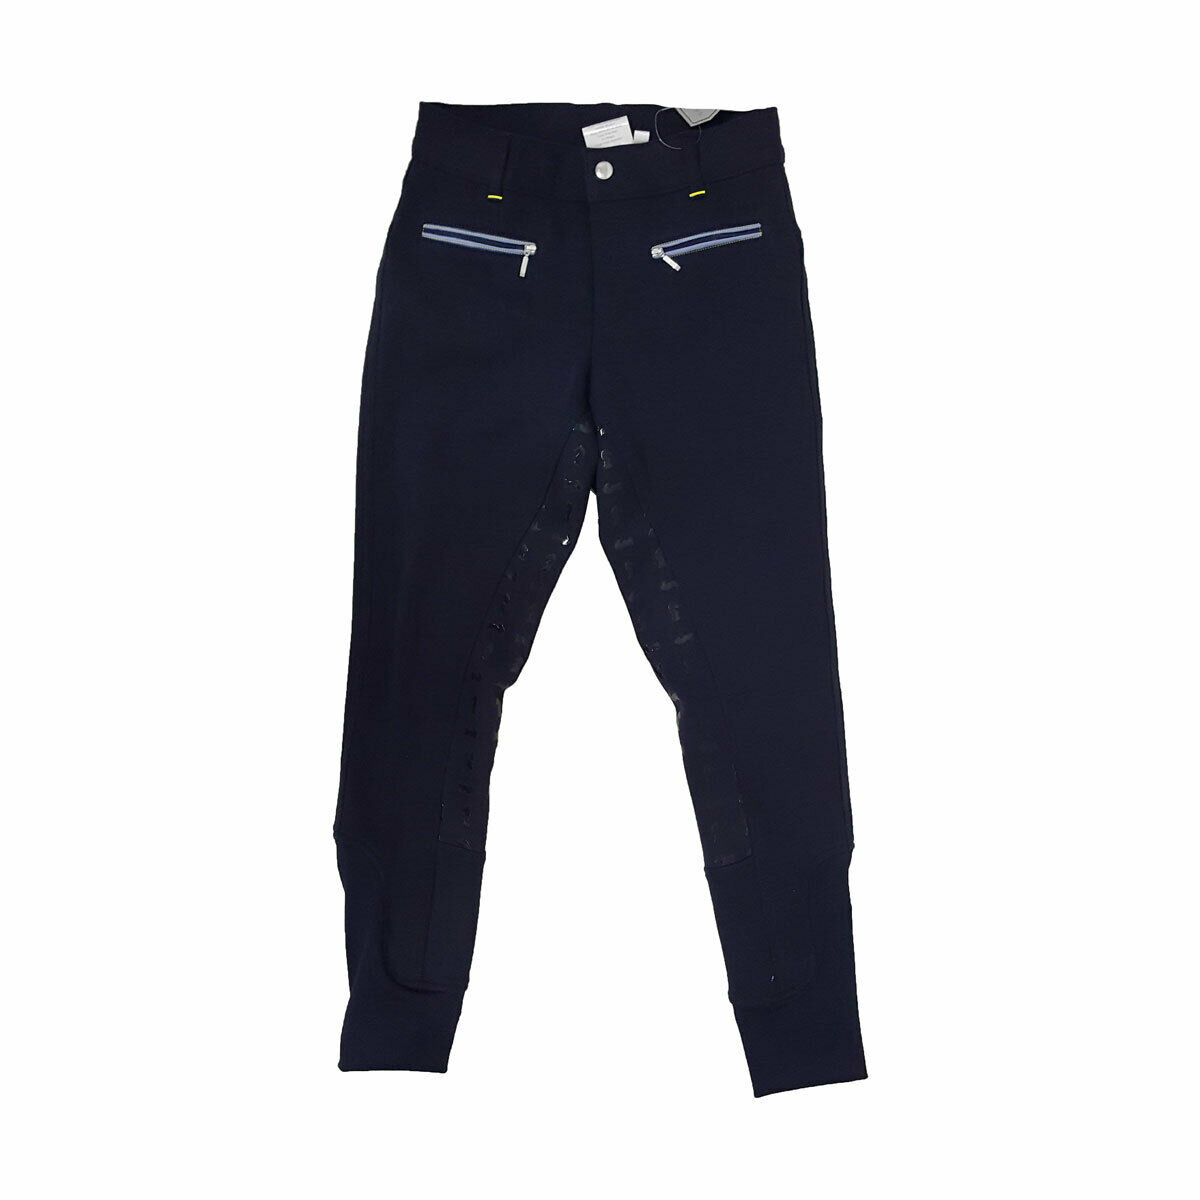 Lancelot  Full Silicon Boys  Breeches by Hy Equestrian from 3 years NEW for 2019  online shopping and fashion store